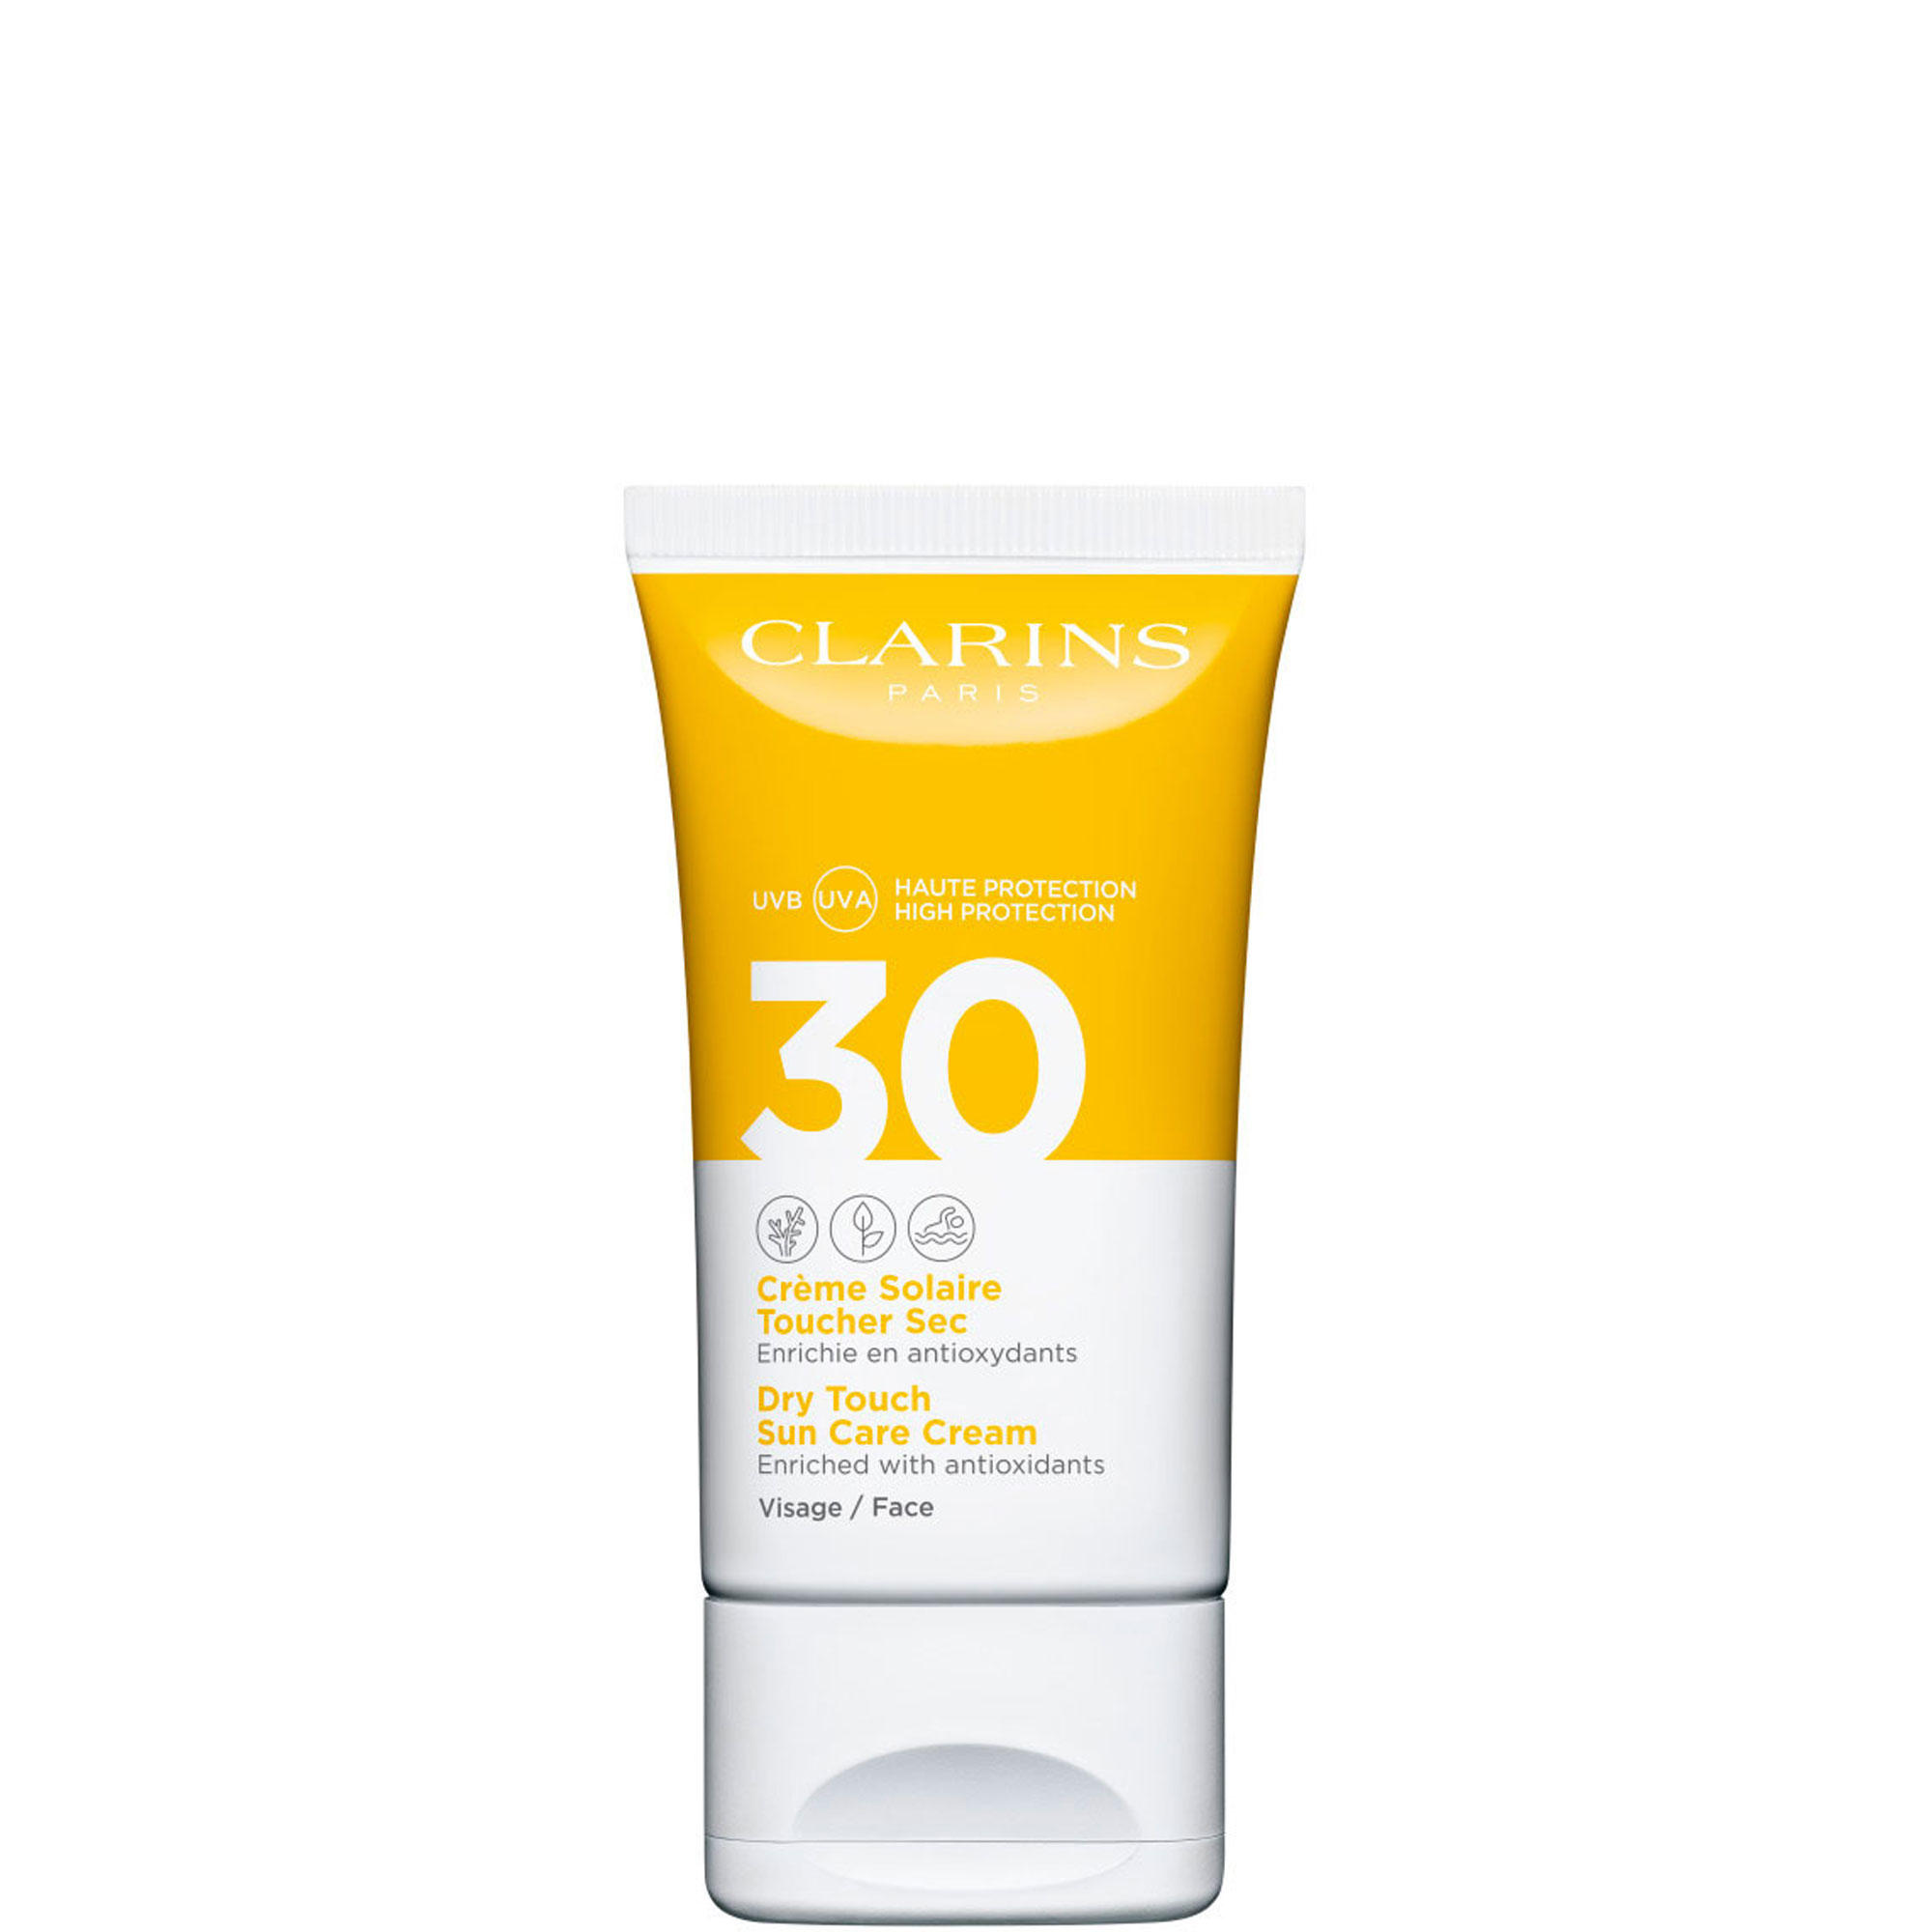 Clarins Dry Touch Sun Care Cream